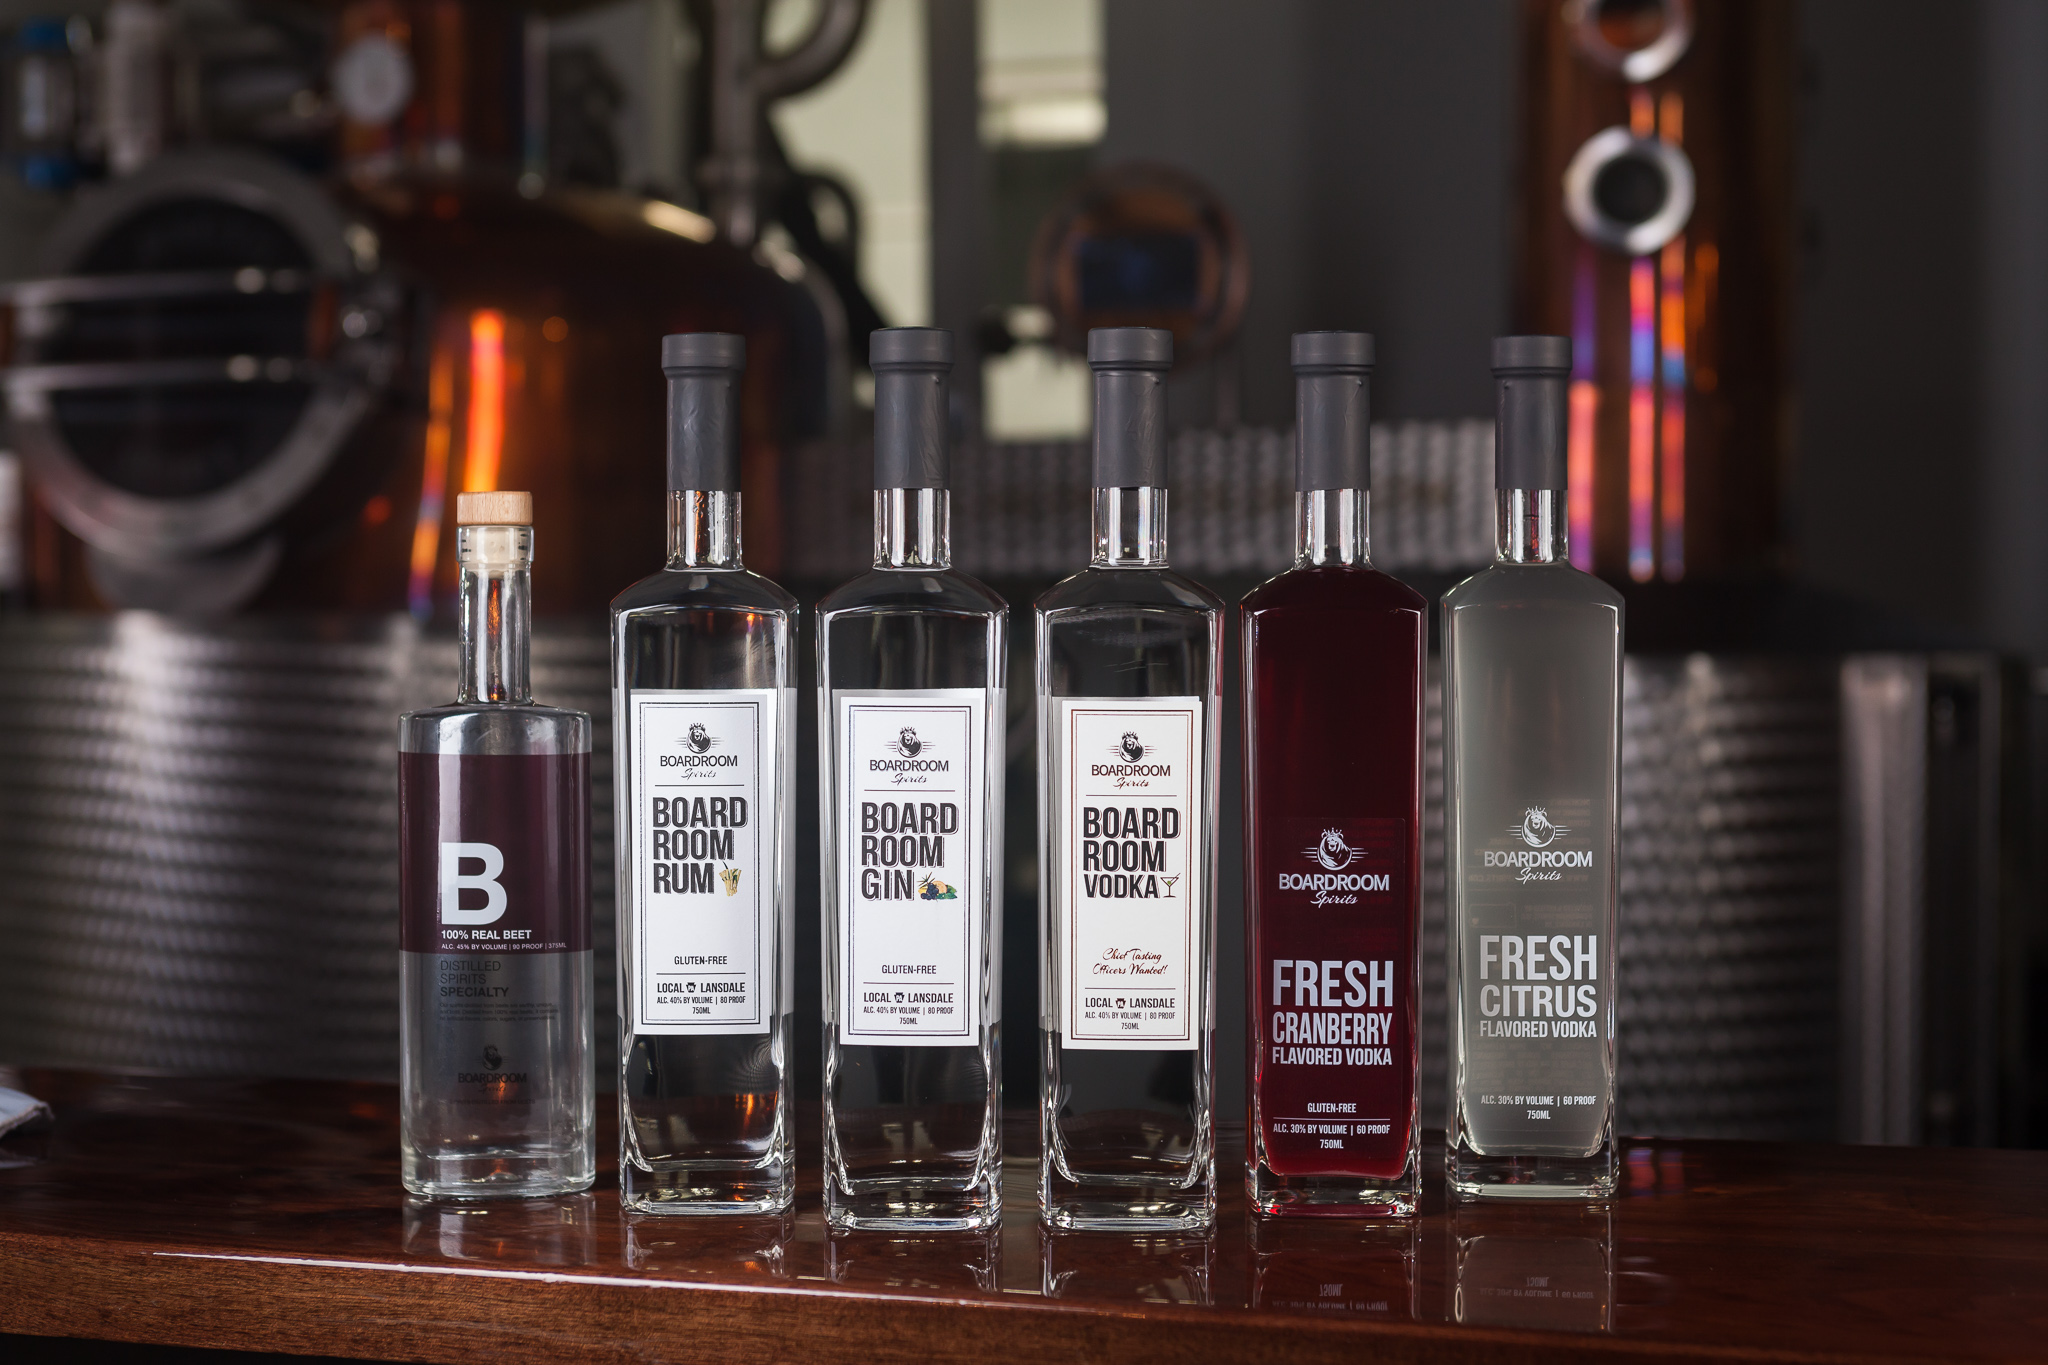 Boardroom Spirits in Lansdale voted among best craft specialty spirit distilleries in U.S.